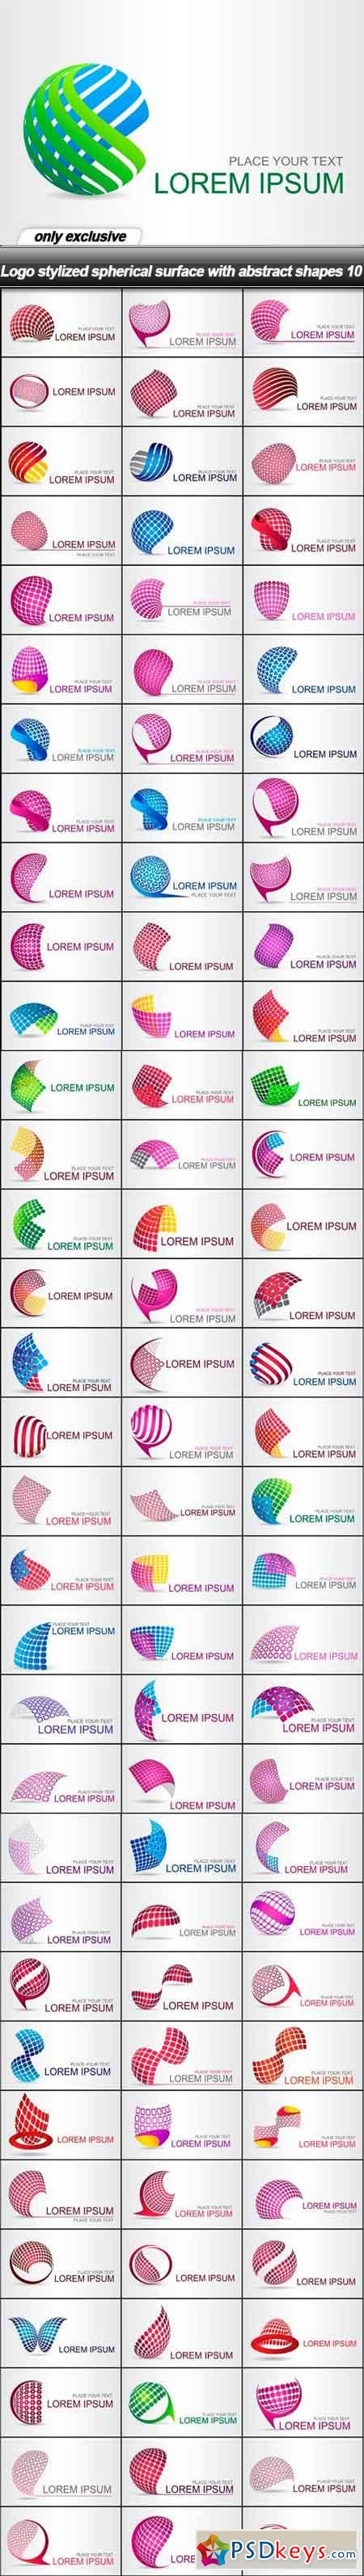 Logo stylized spherical surface with abstract shapes 10 - 100 EPS